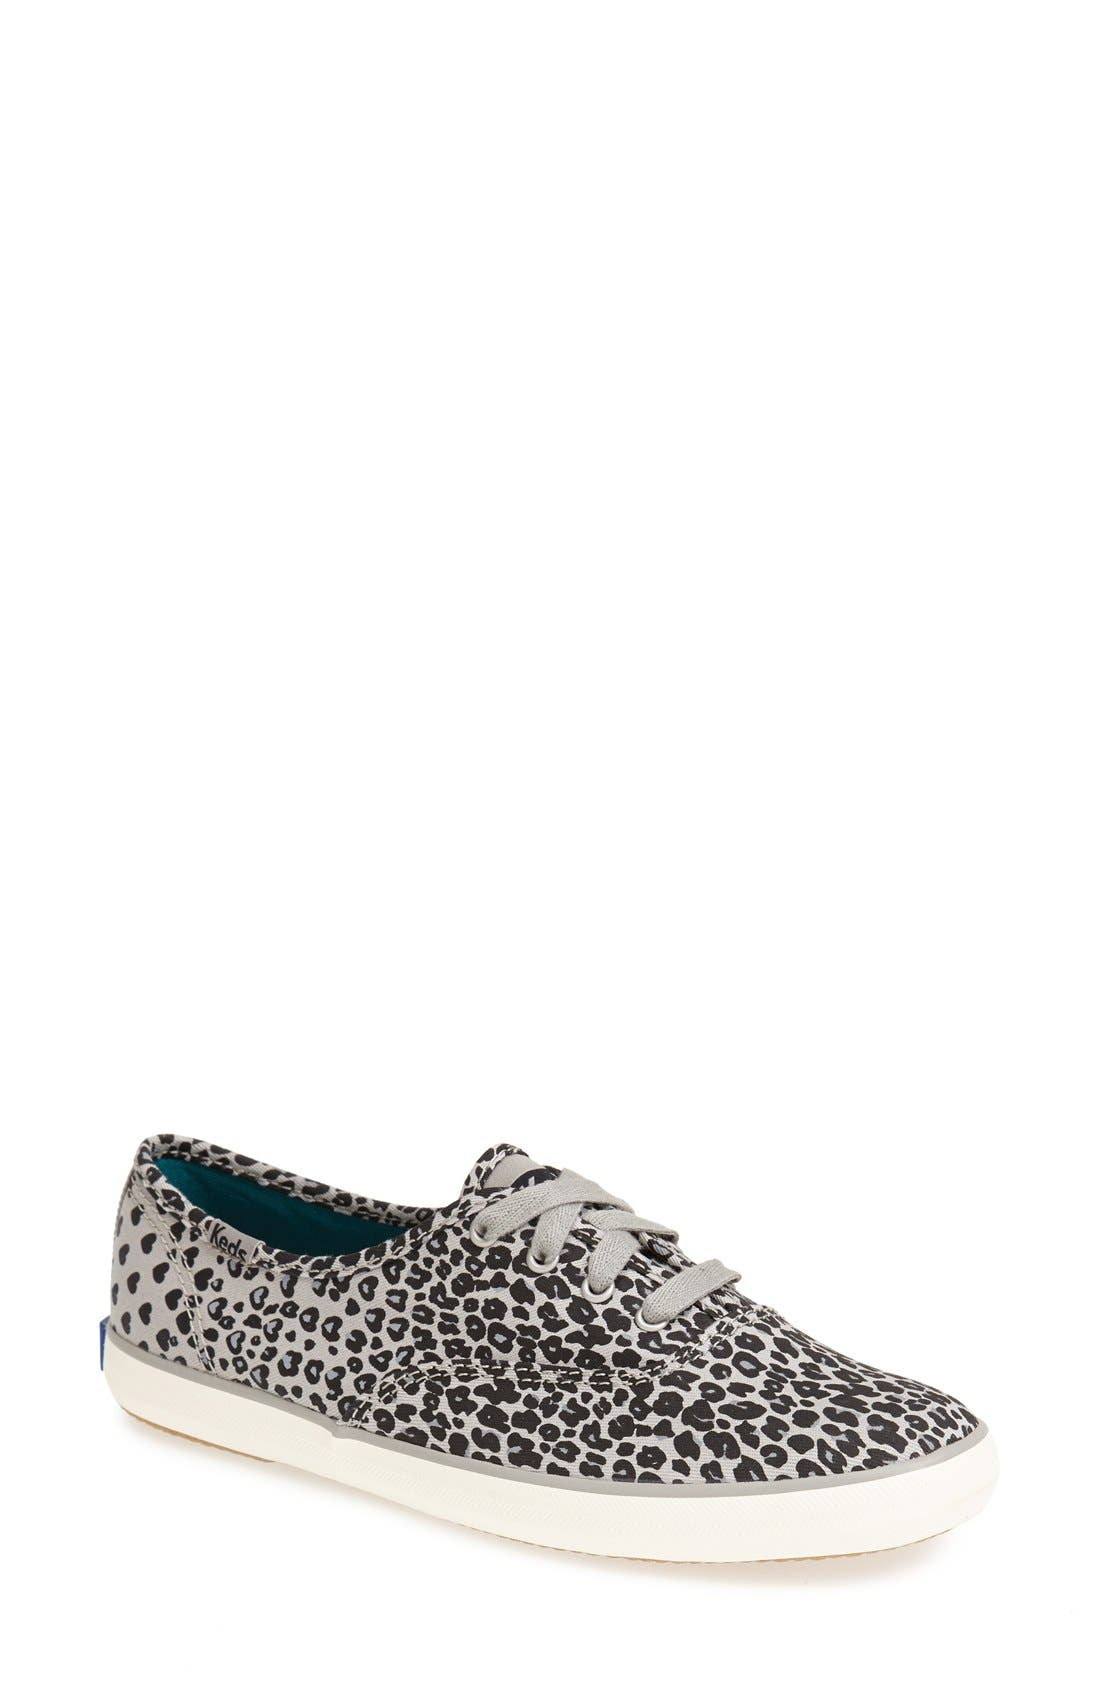 Alternate Image 1 Selected - Keds® 'Champion - Leopard' Sneaker (Women)